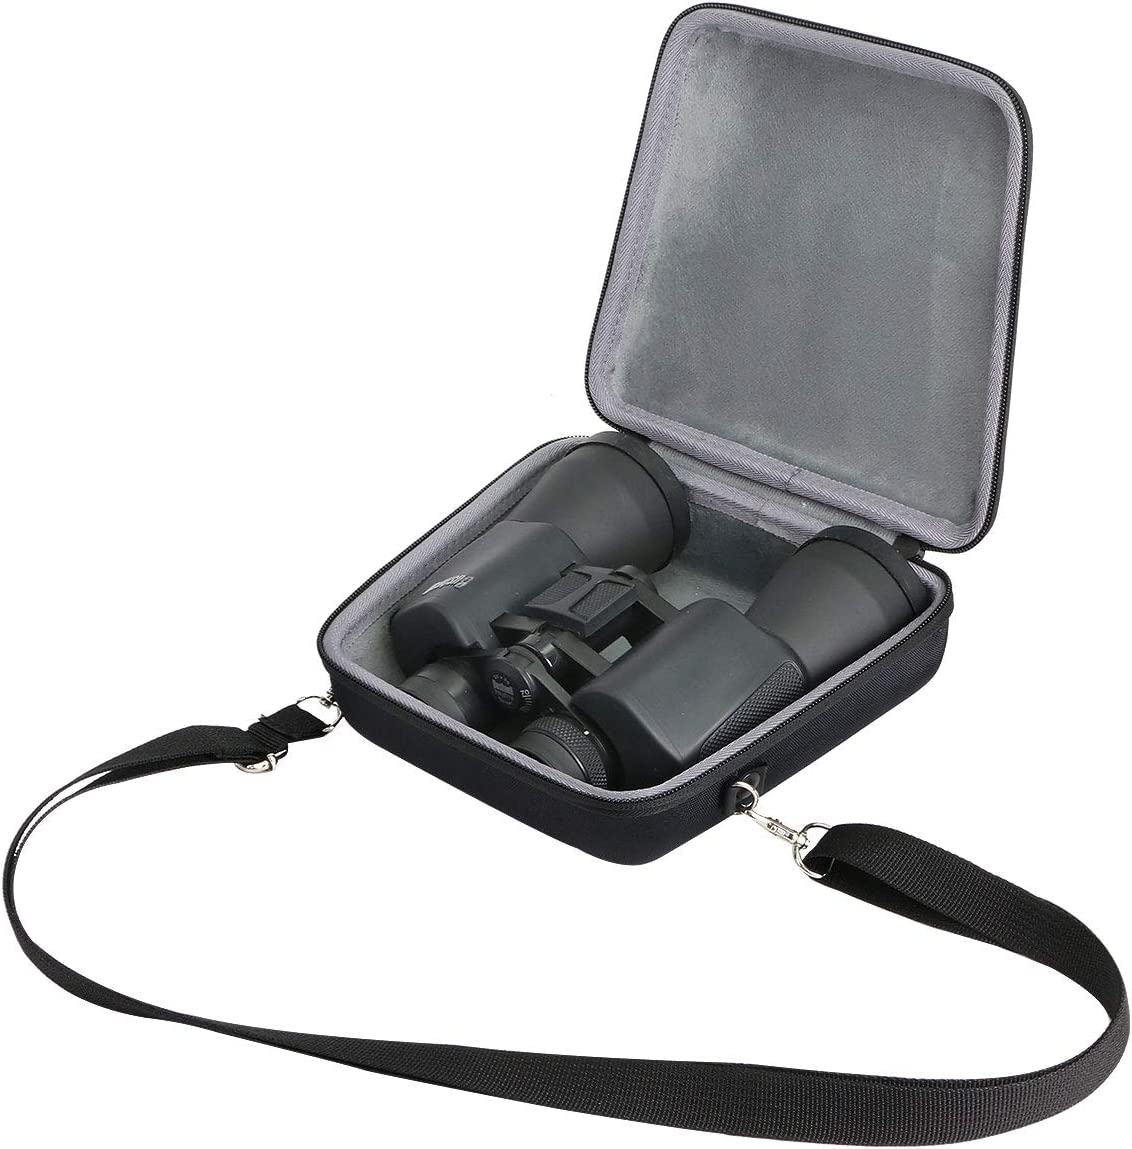 co2crea Hard Travel Case for Bushnell Falcon/Powerview Wide Angle Binocular